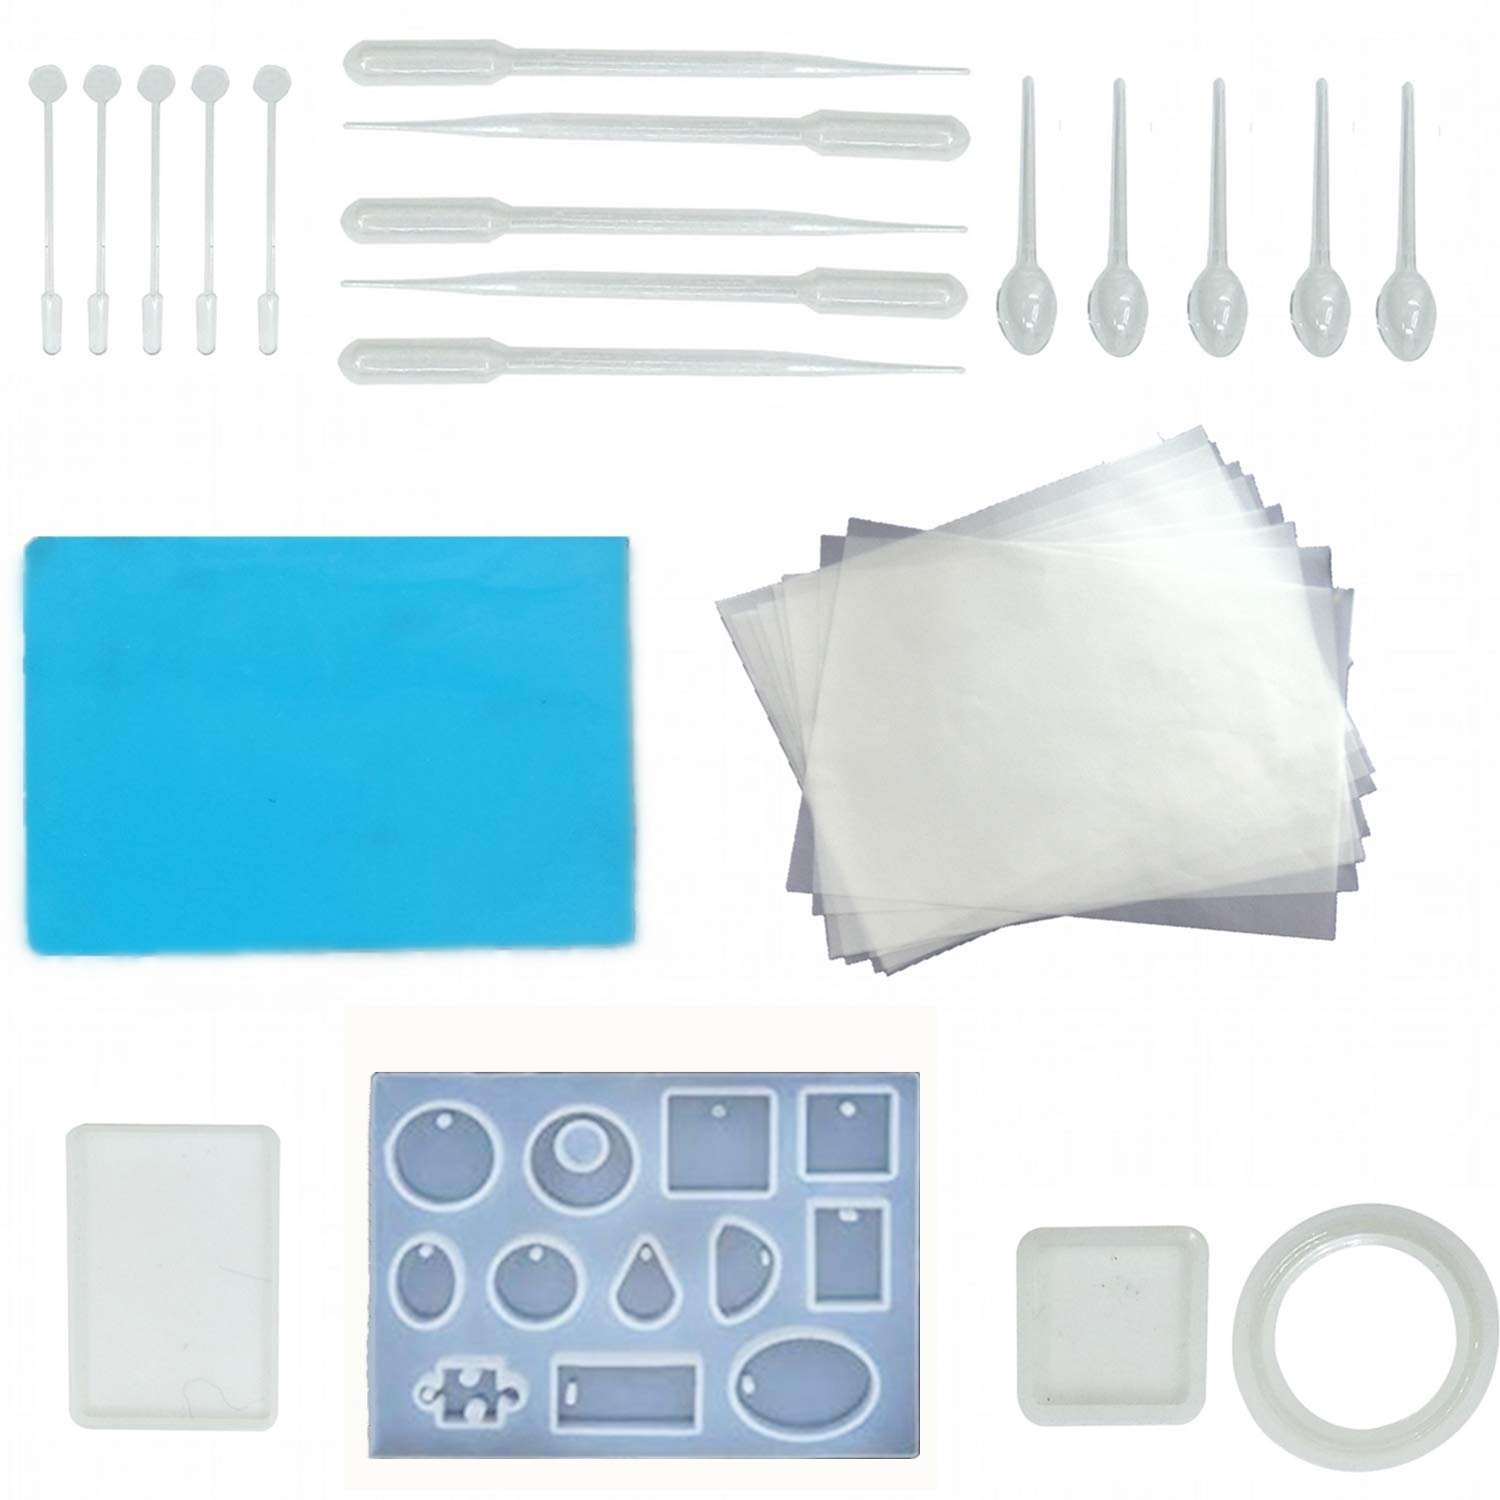 Resin Casting Molds and Tools Set, Include Assorted Styles Silicone Molds, Stirrers, Droppers, Spoons, and Parchment Papers, Silicone Sheet for Pendant Jewelry Making,30 Pieces Totally